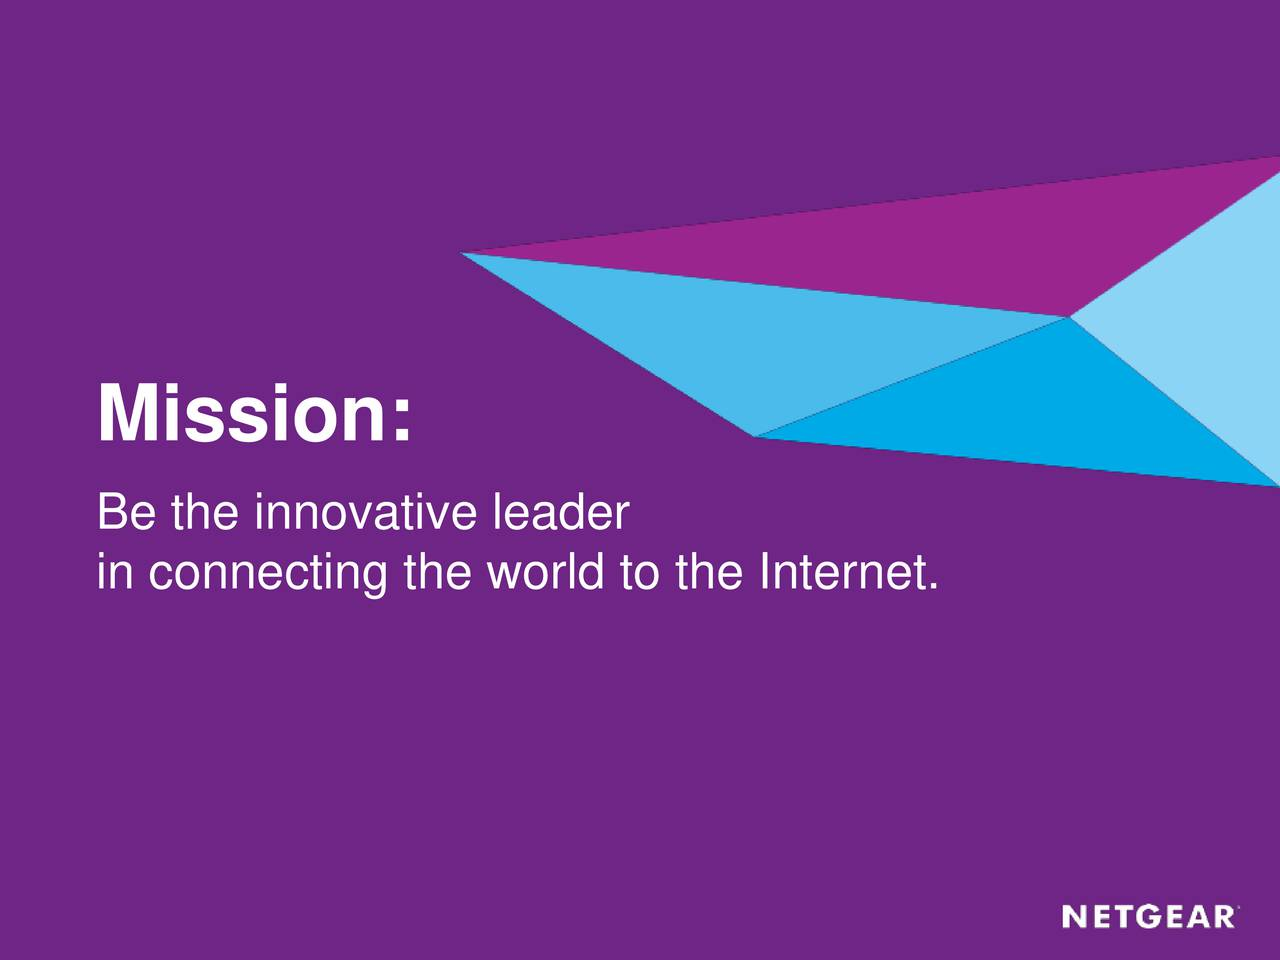 Be the innovative leader in connecting the world to the Internet.